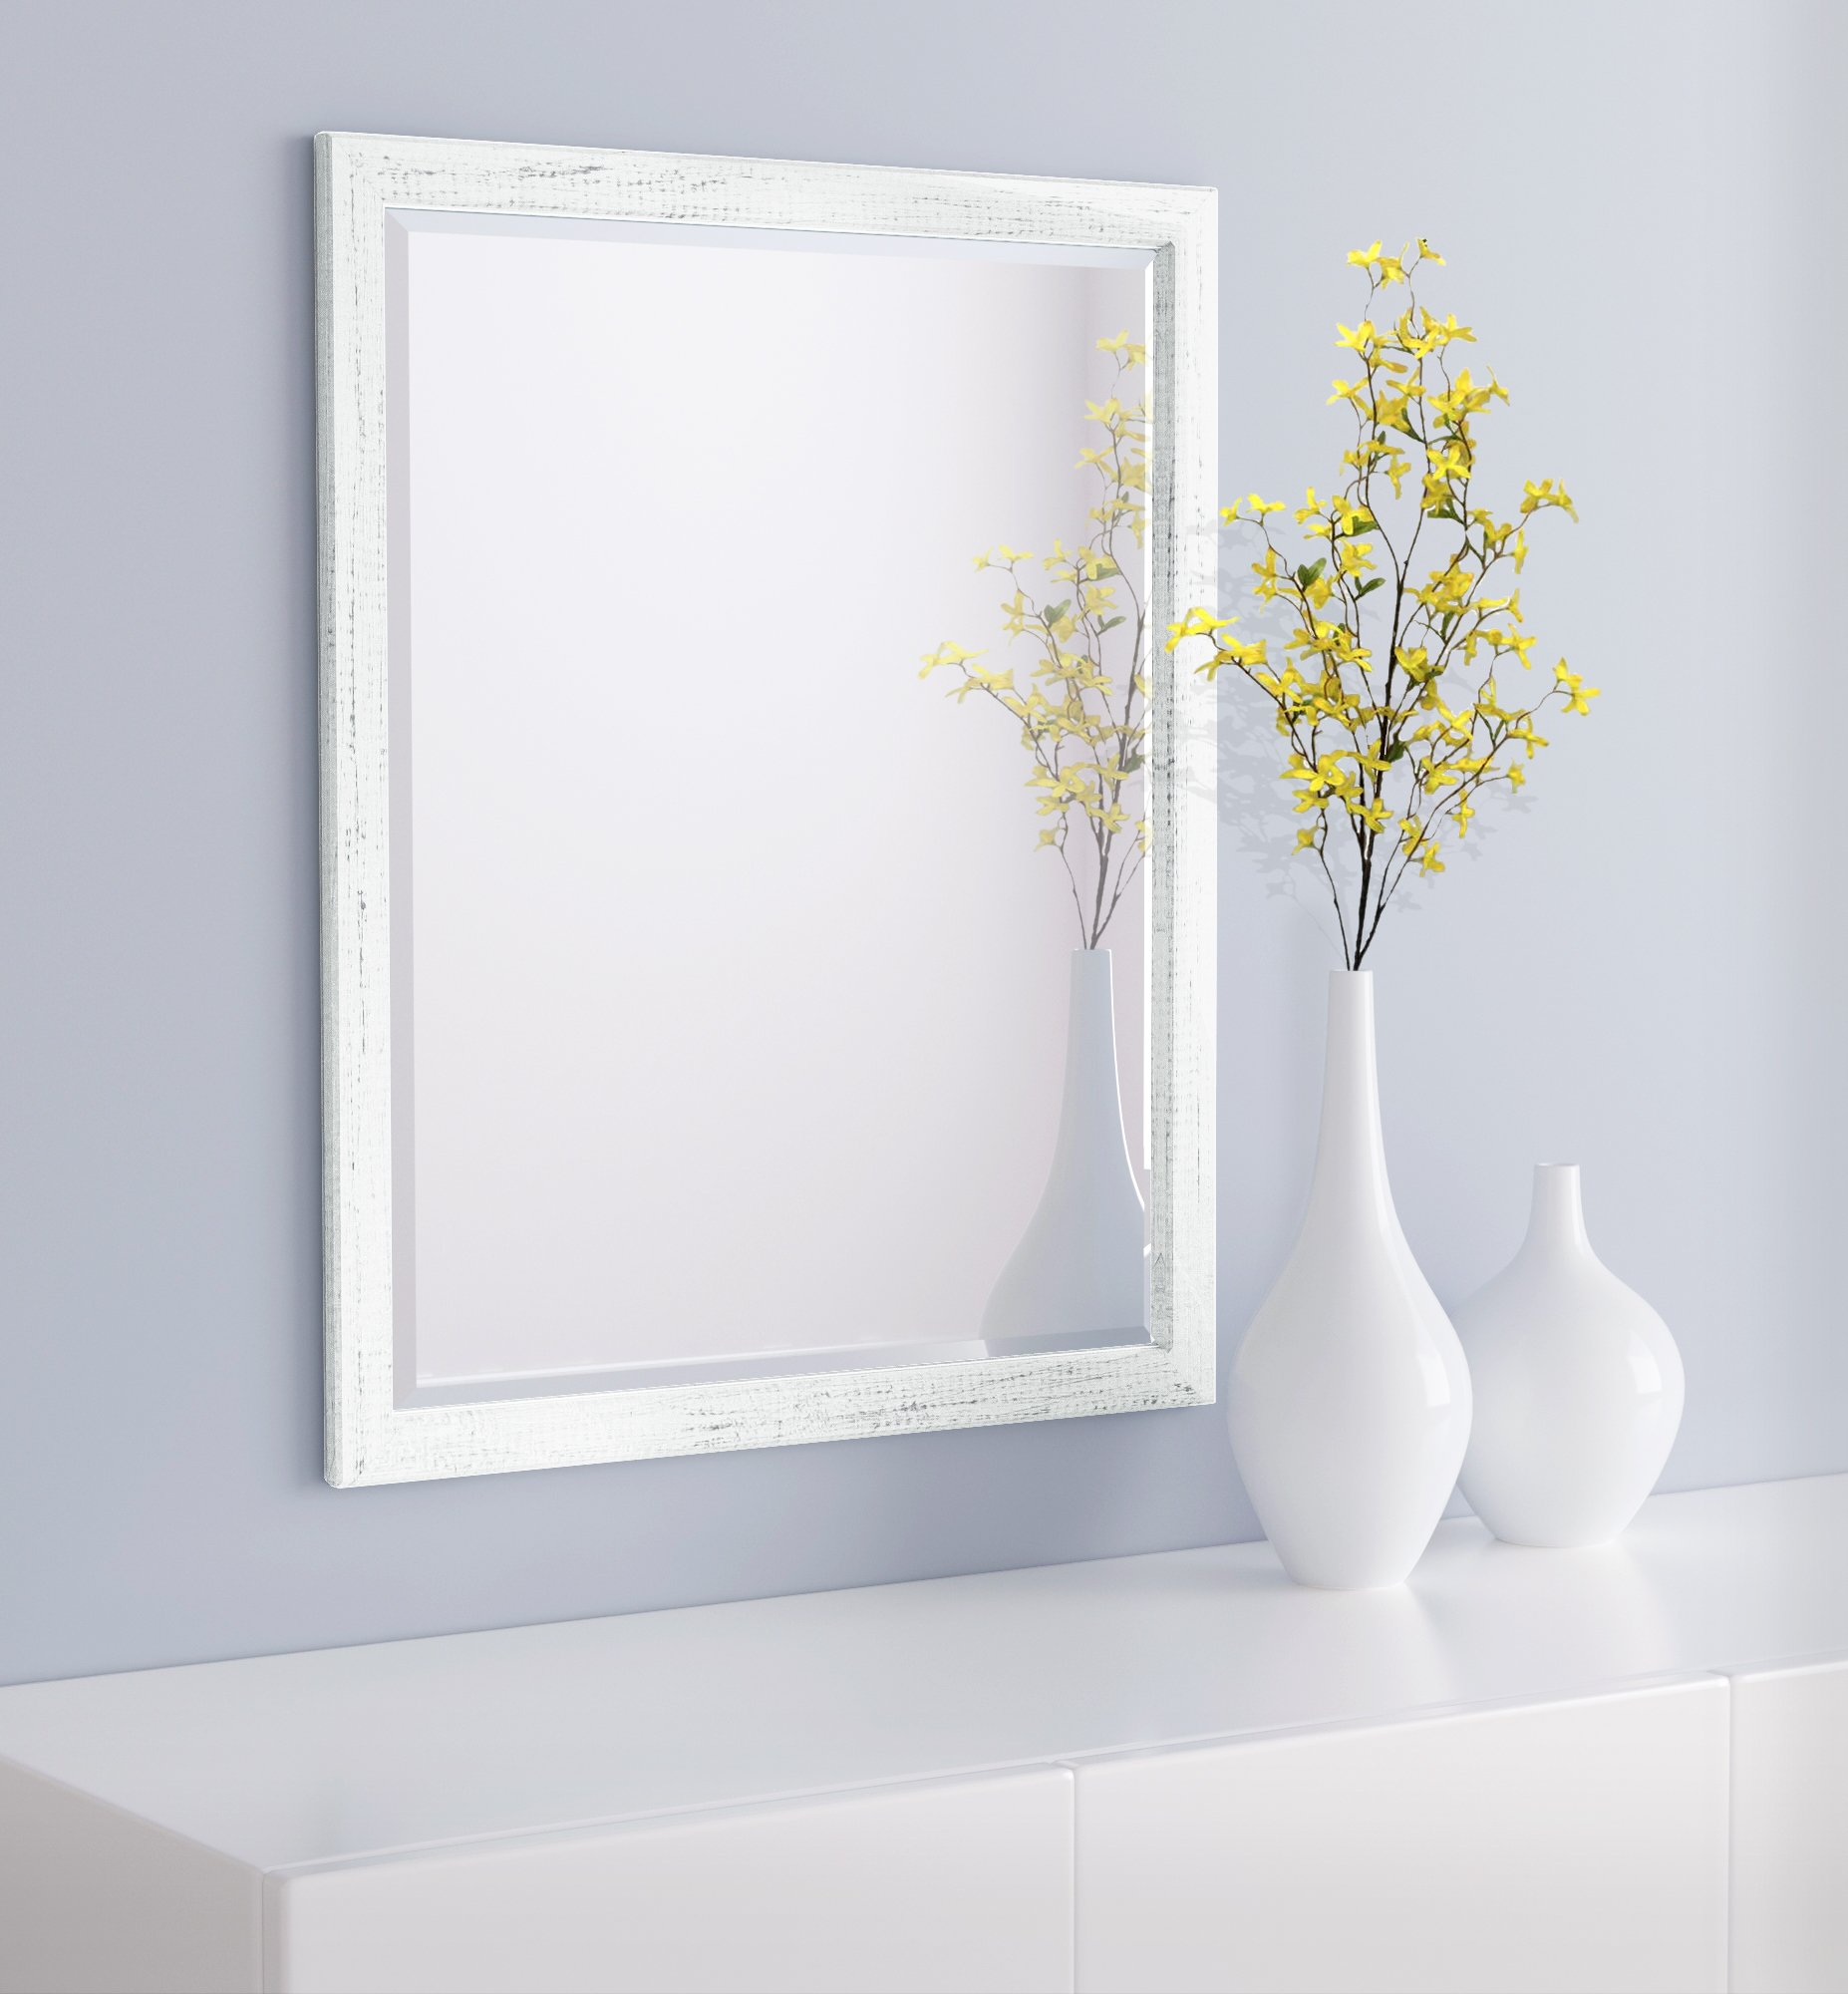 LND Reflections - Framed Beveled Mirror - 25''x31'' or 27''x39'' (27'' x 39'', Marshmallow White)